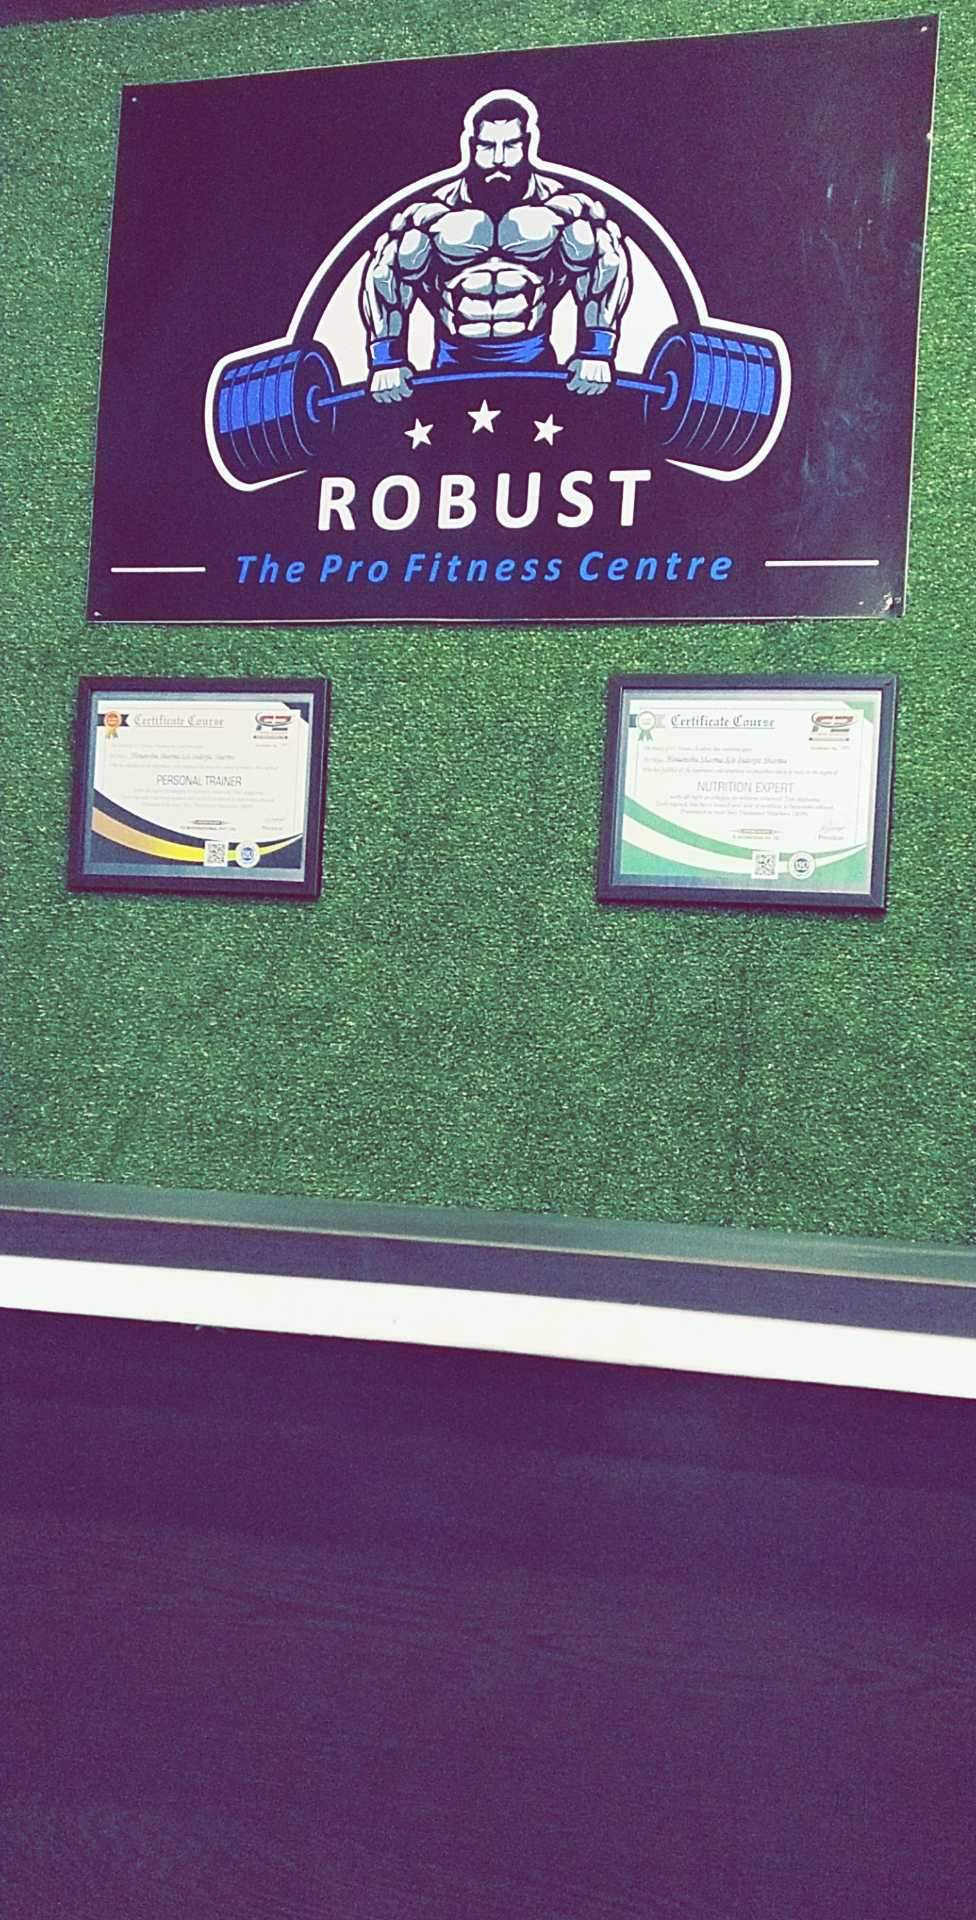 Robust Gym The Pro Fitness Center Sector 4